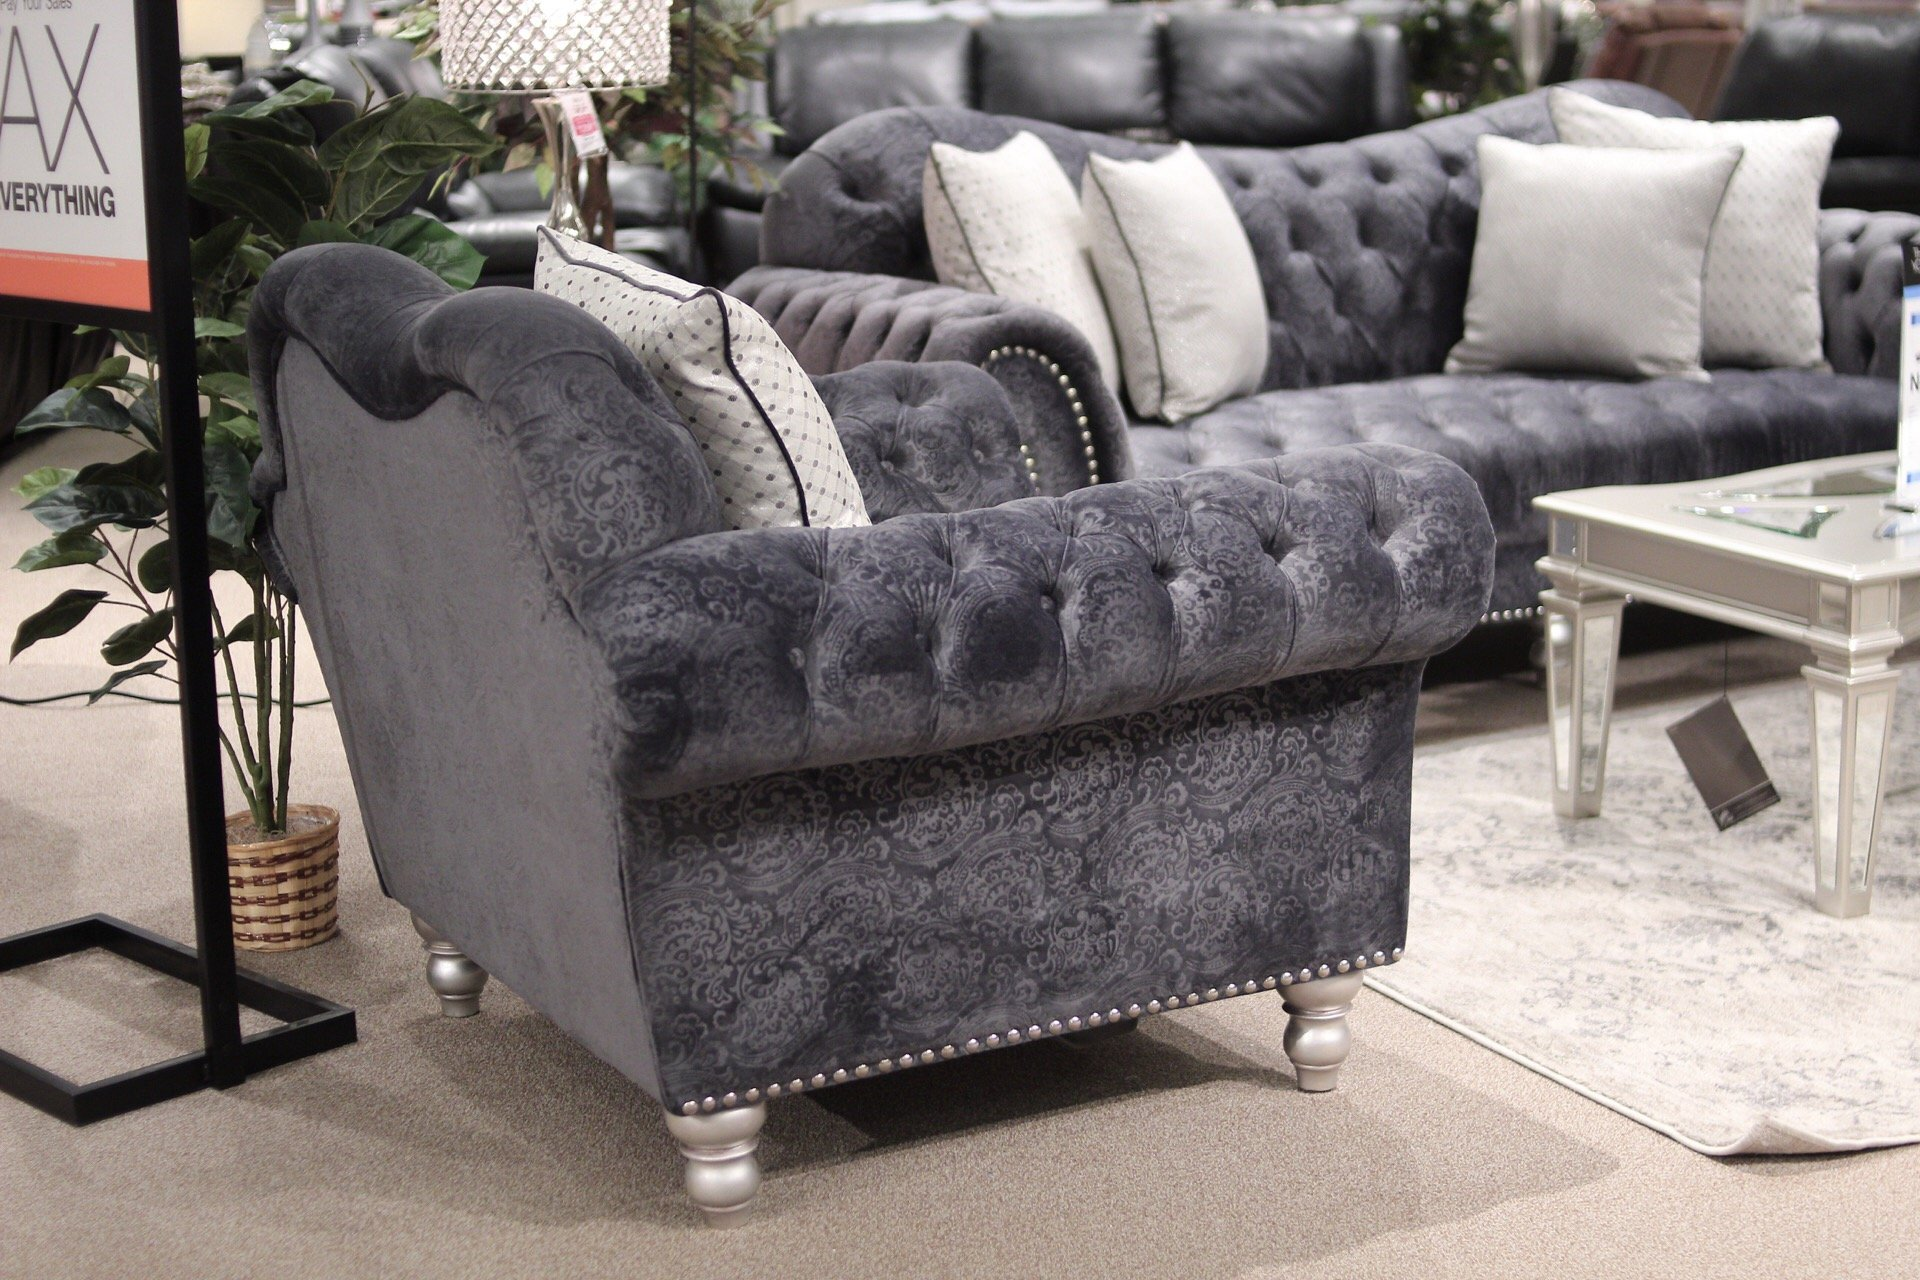 Picking Out New Living Room Furniture at Gardner-White- SlayAtHomeMother.com